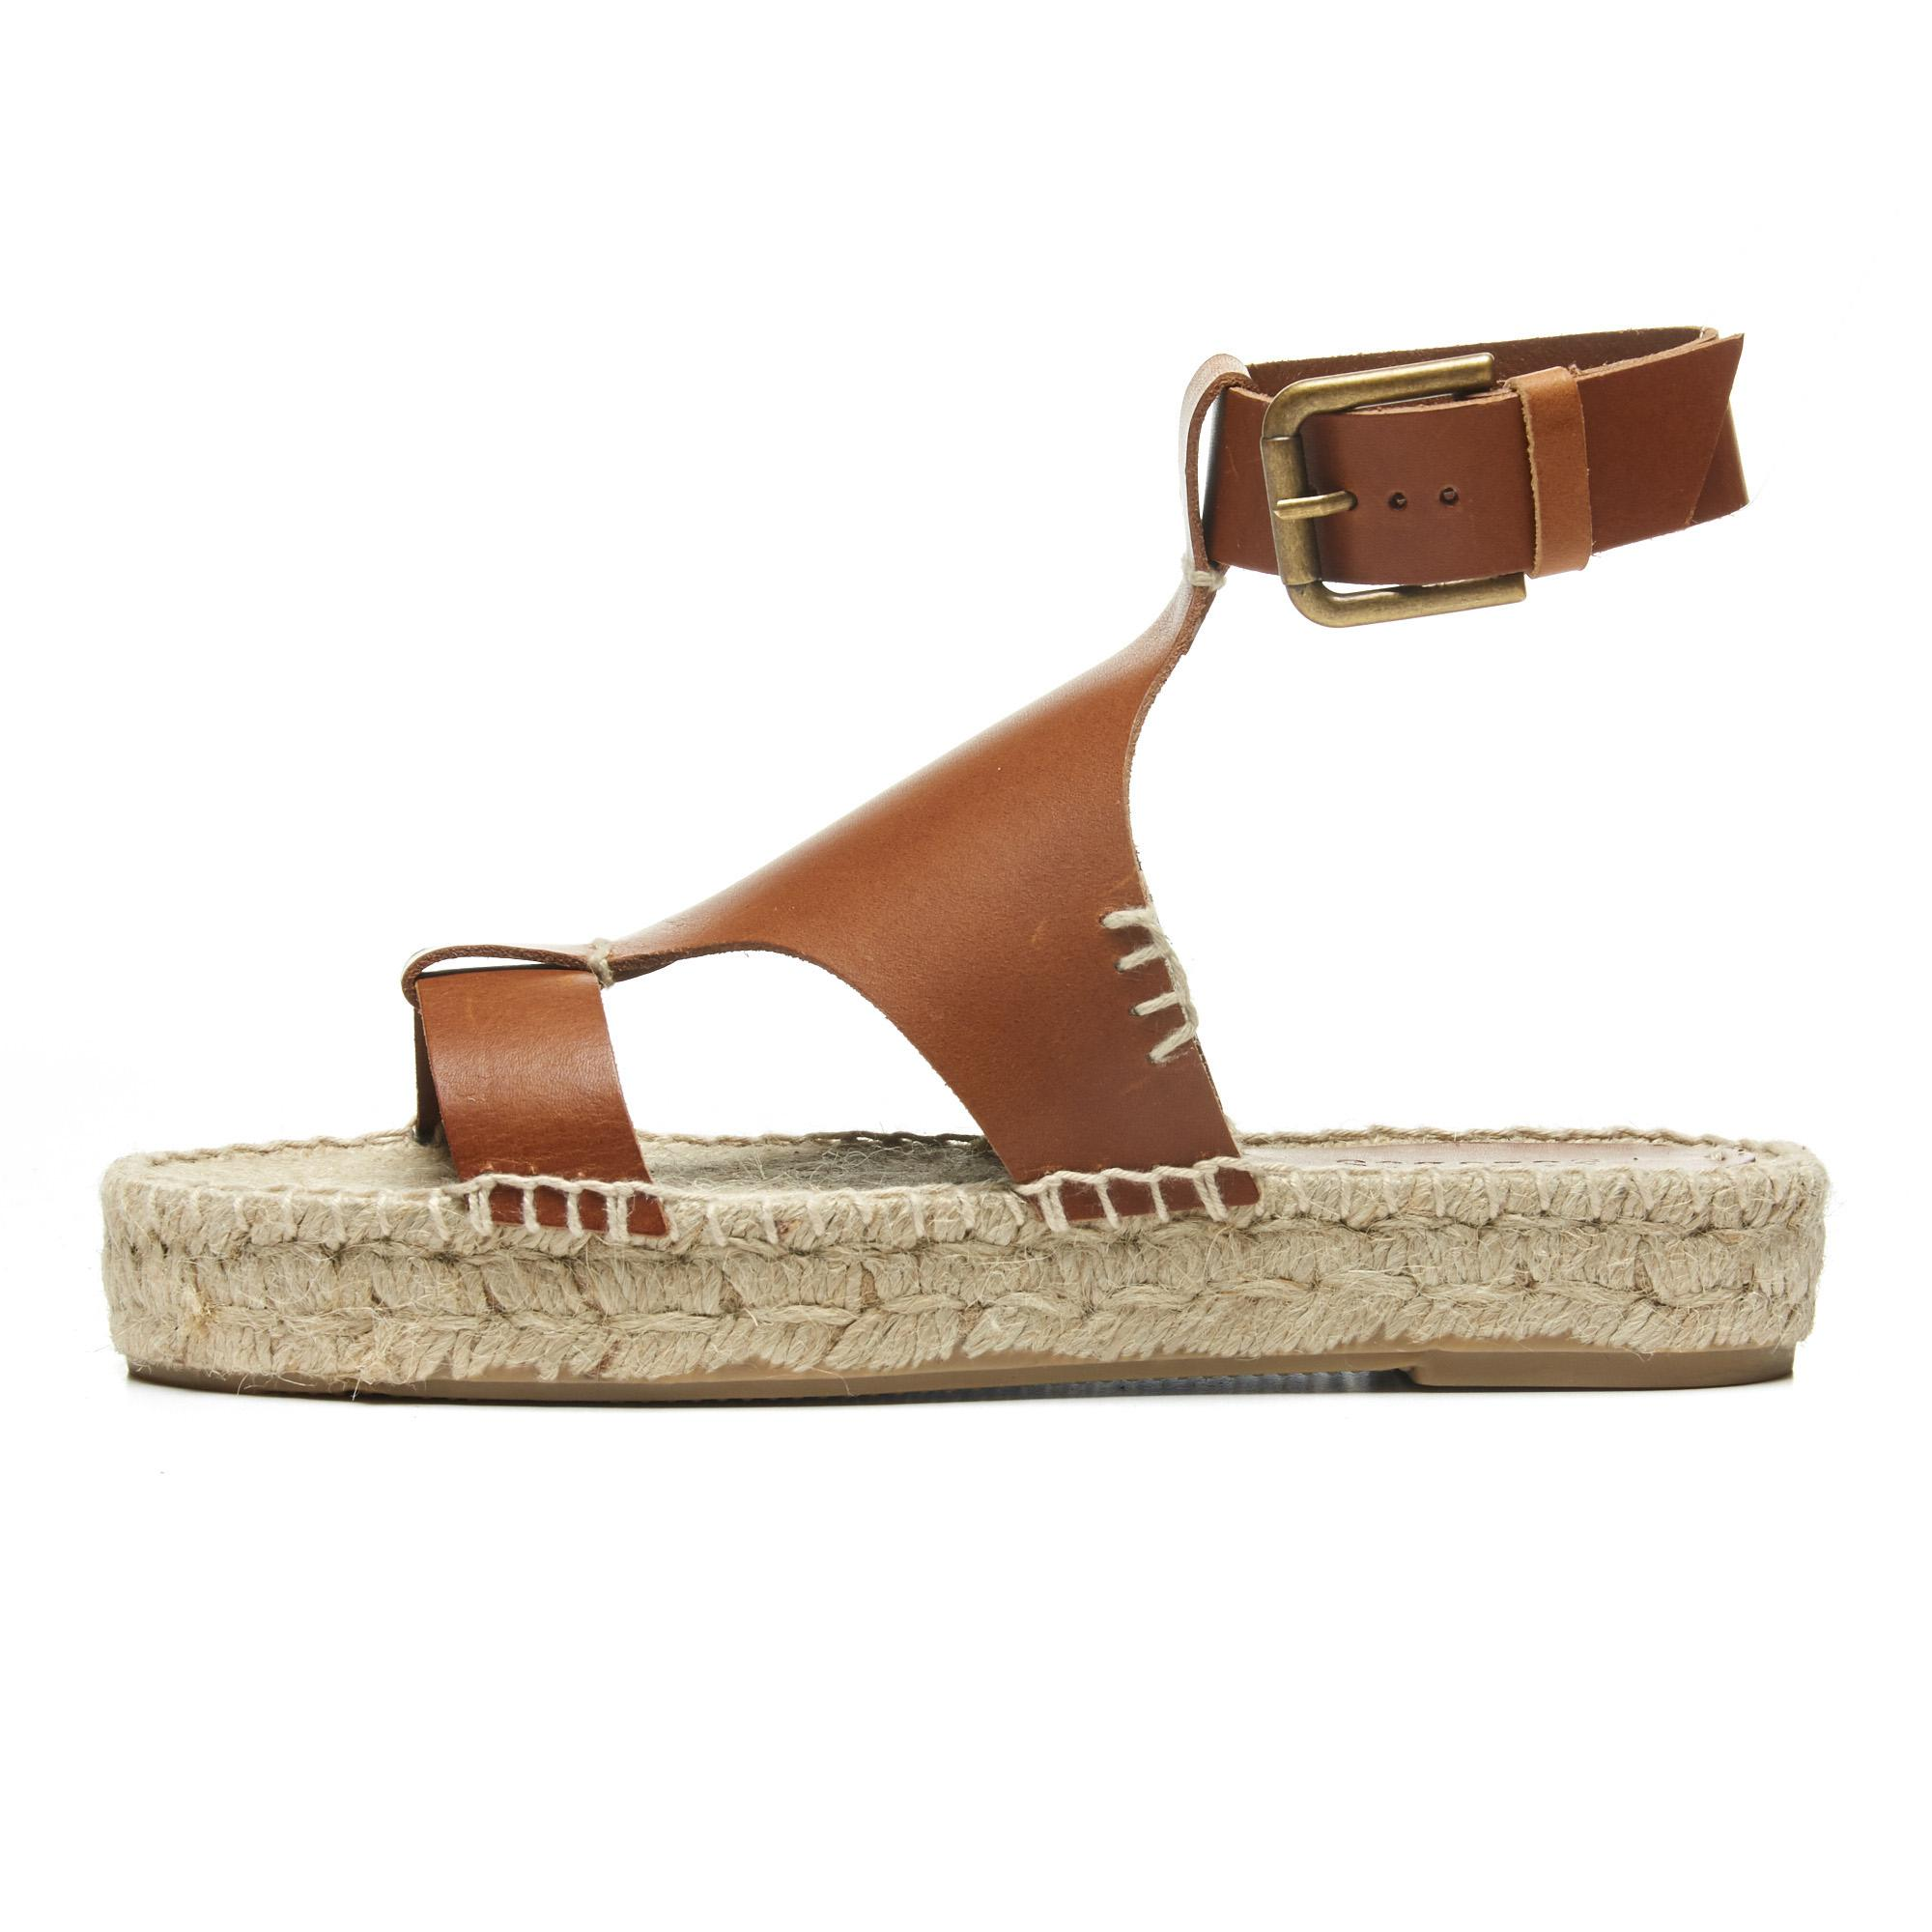 e52d169c198 Lyst - Soludos Banded Shield Open Toe Leather Sandals in Brown